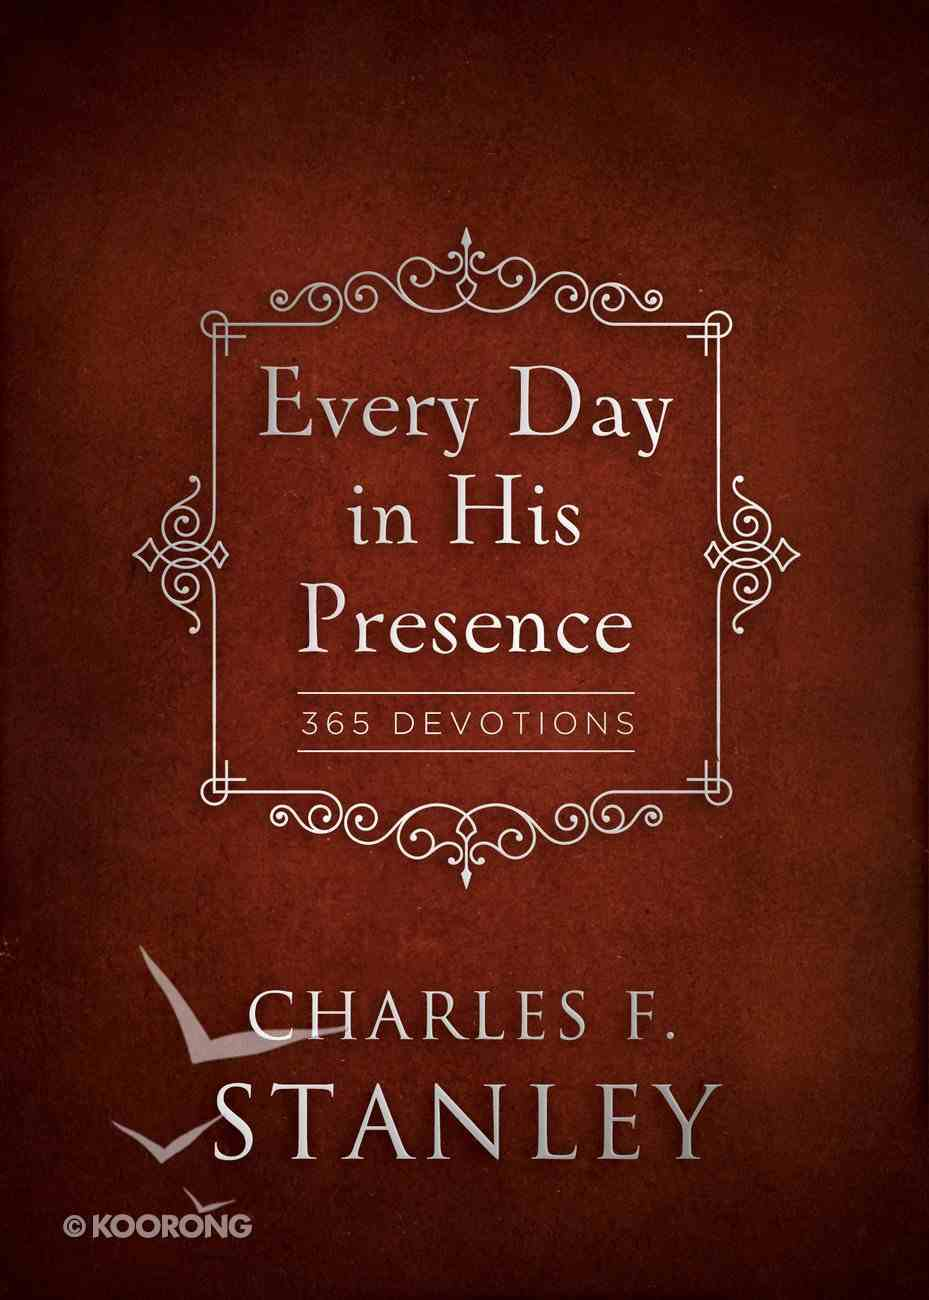 Every Day in His Presence: 365 Devotions eBook